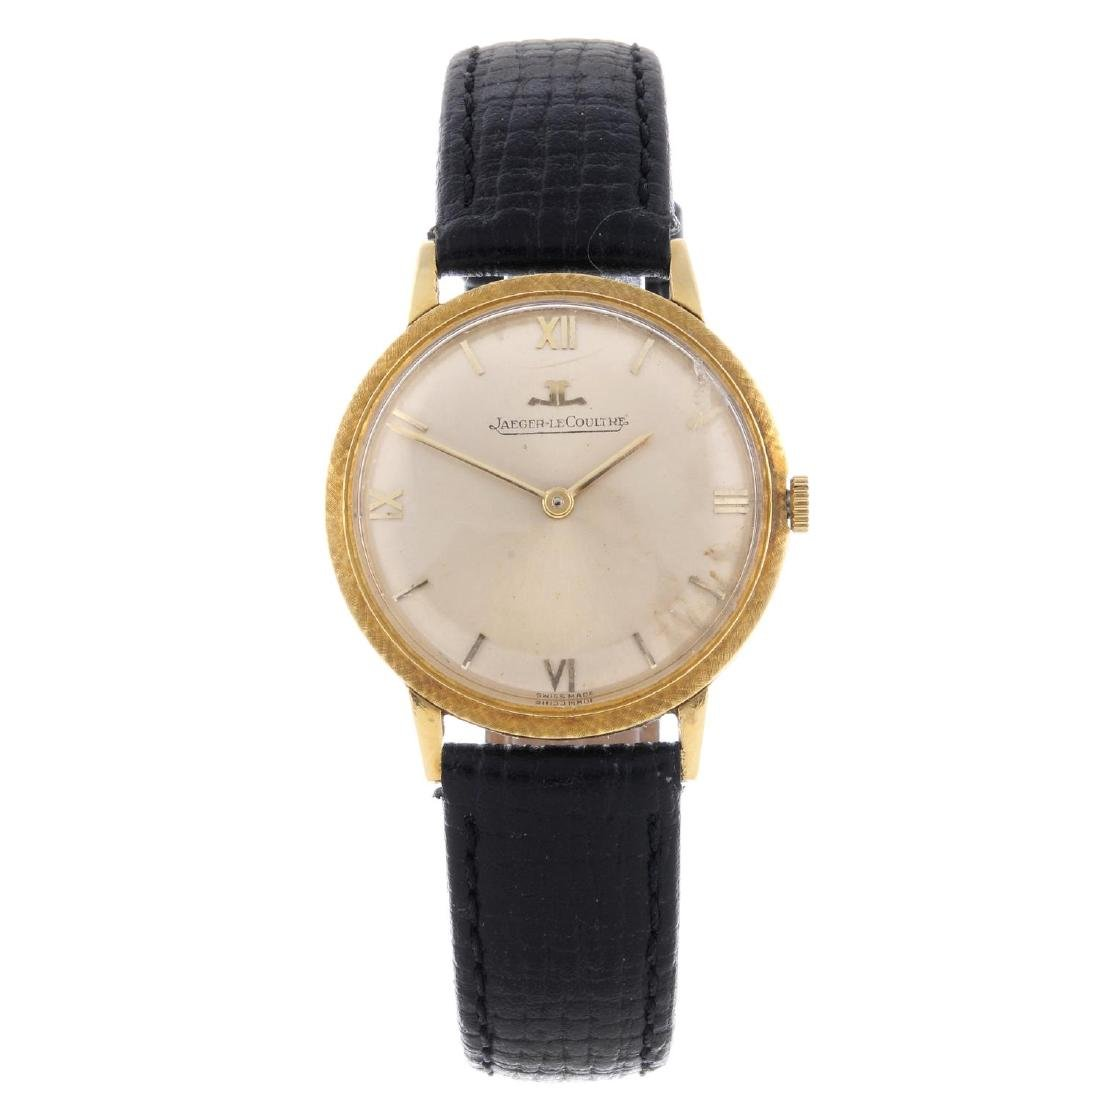 JAEGER-LECOULTRE - a gentleman's wrist watch. Yellow